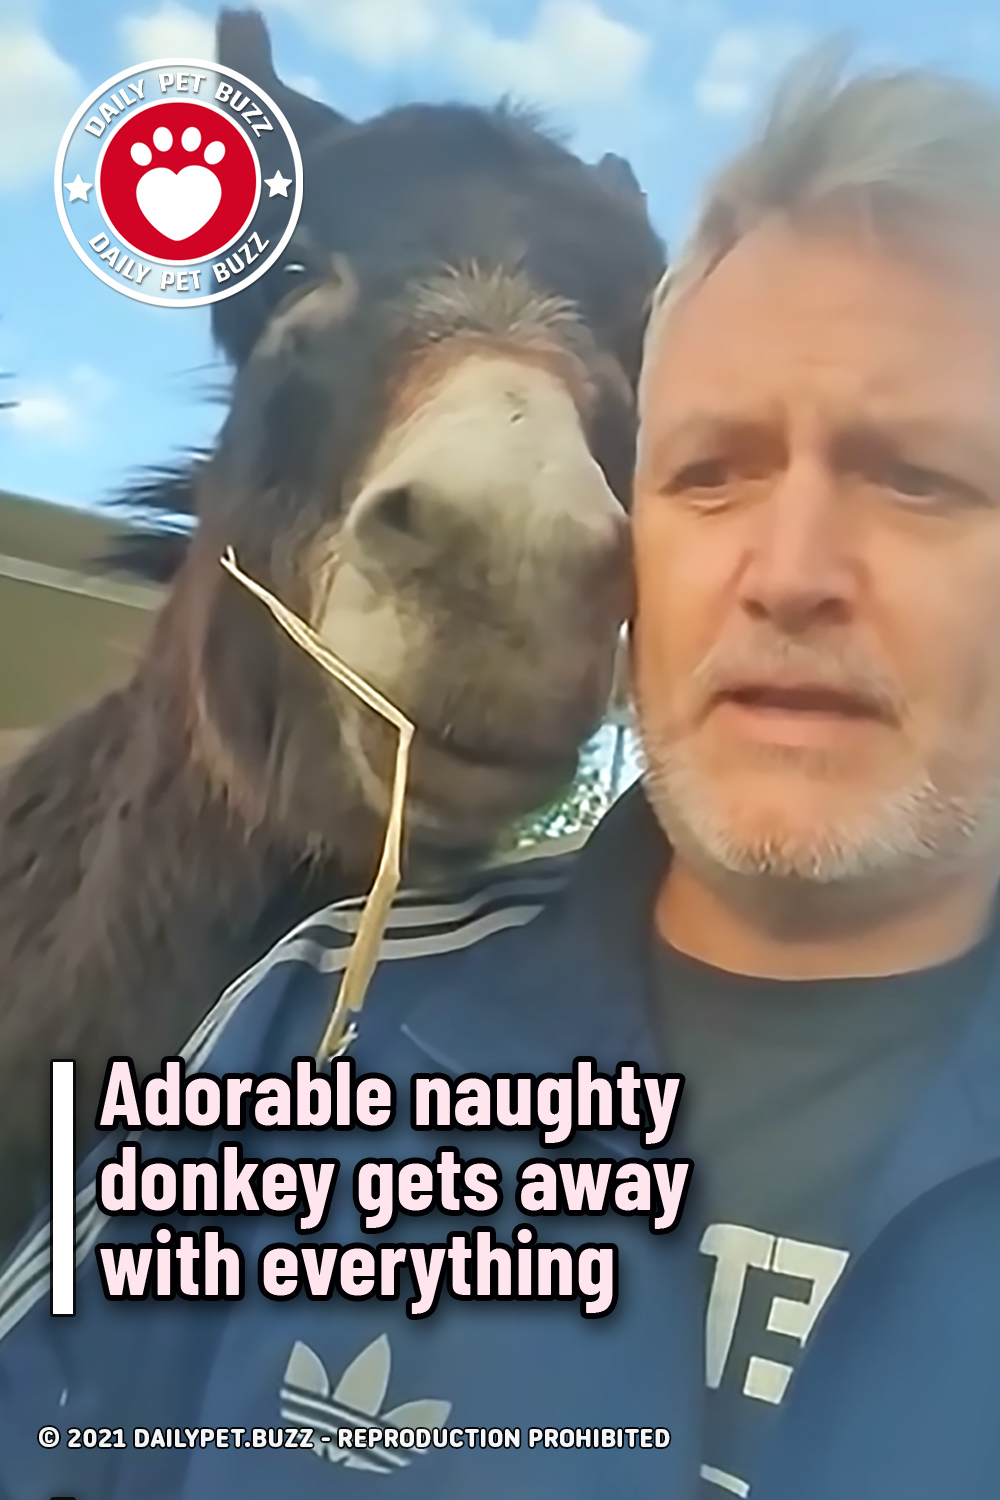 Adorable naughty donkey gets away with everything